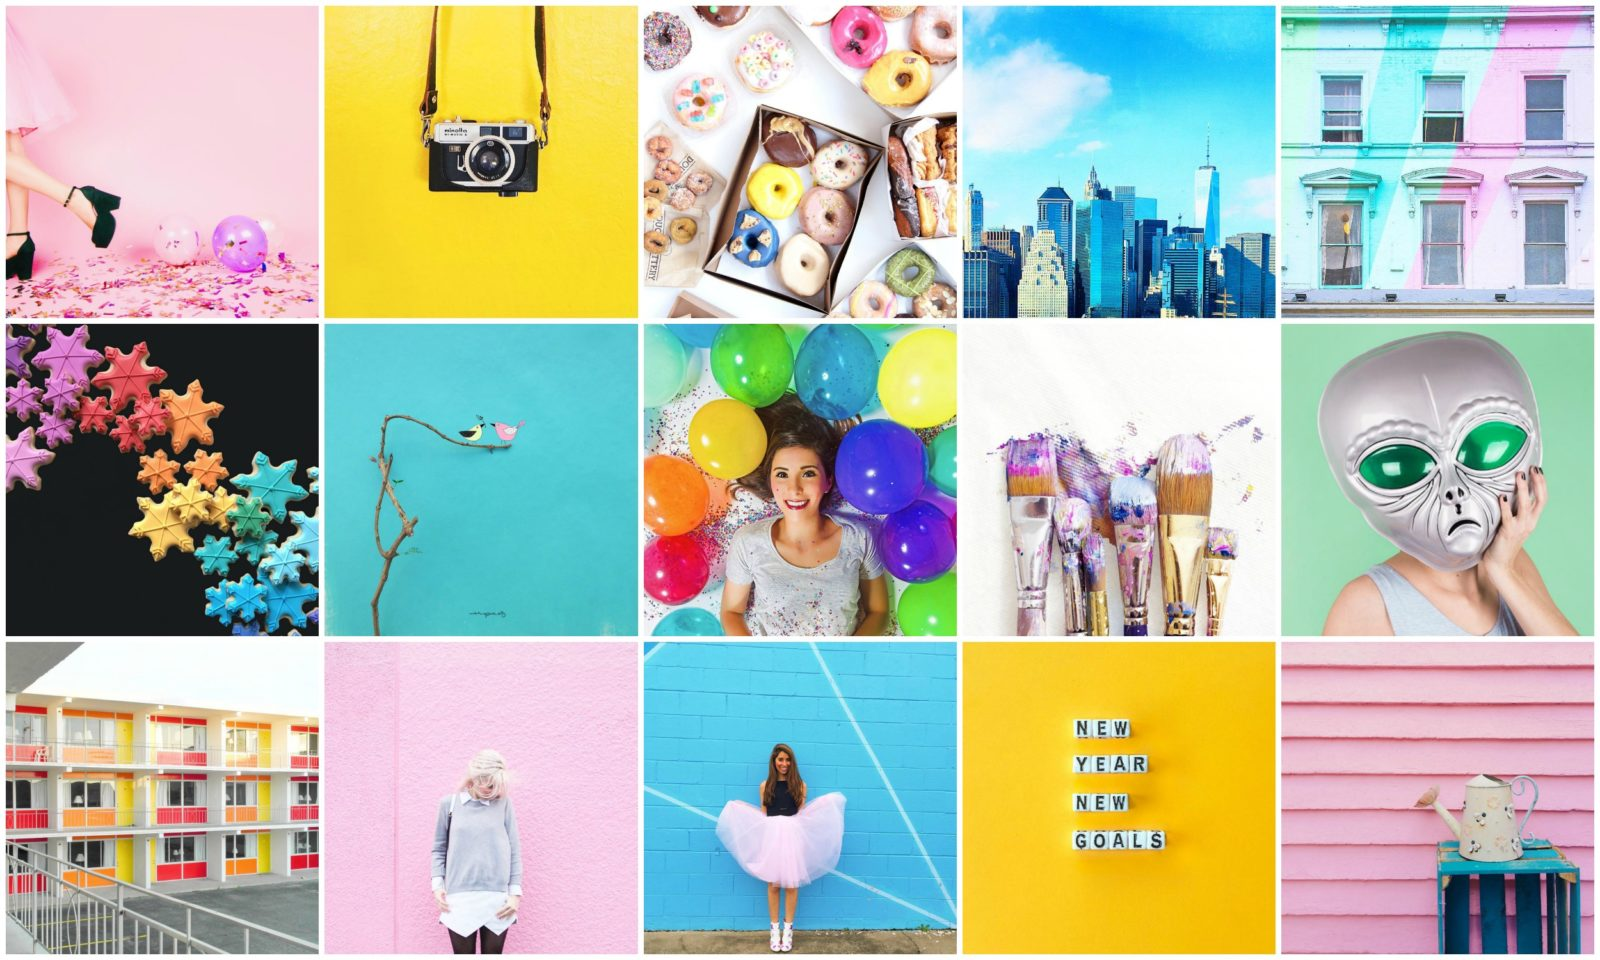 Most-Colorful-Instagram-Accounts.jpg